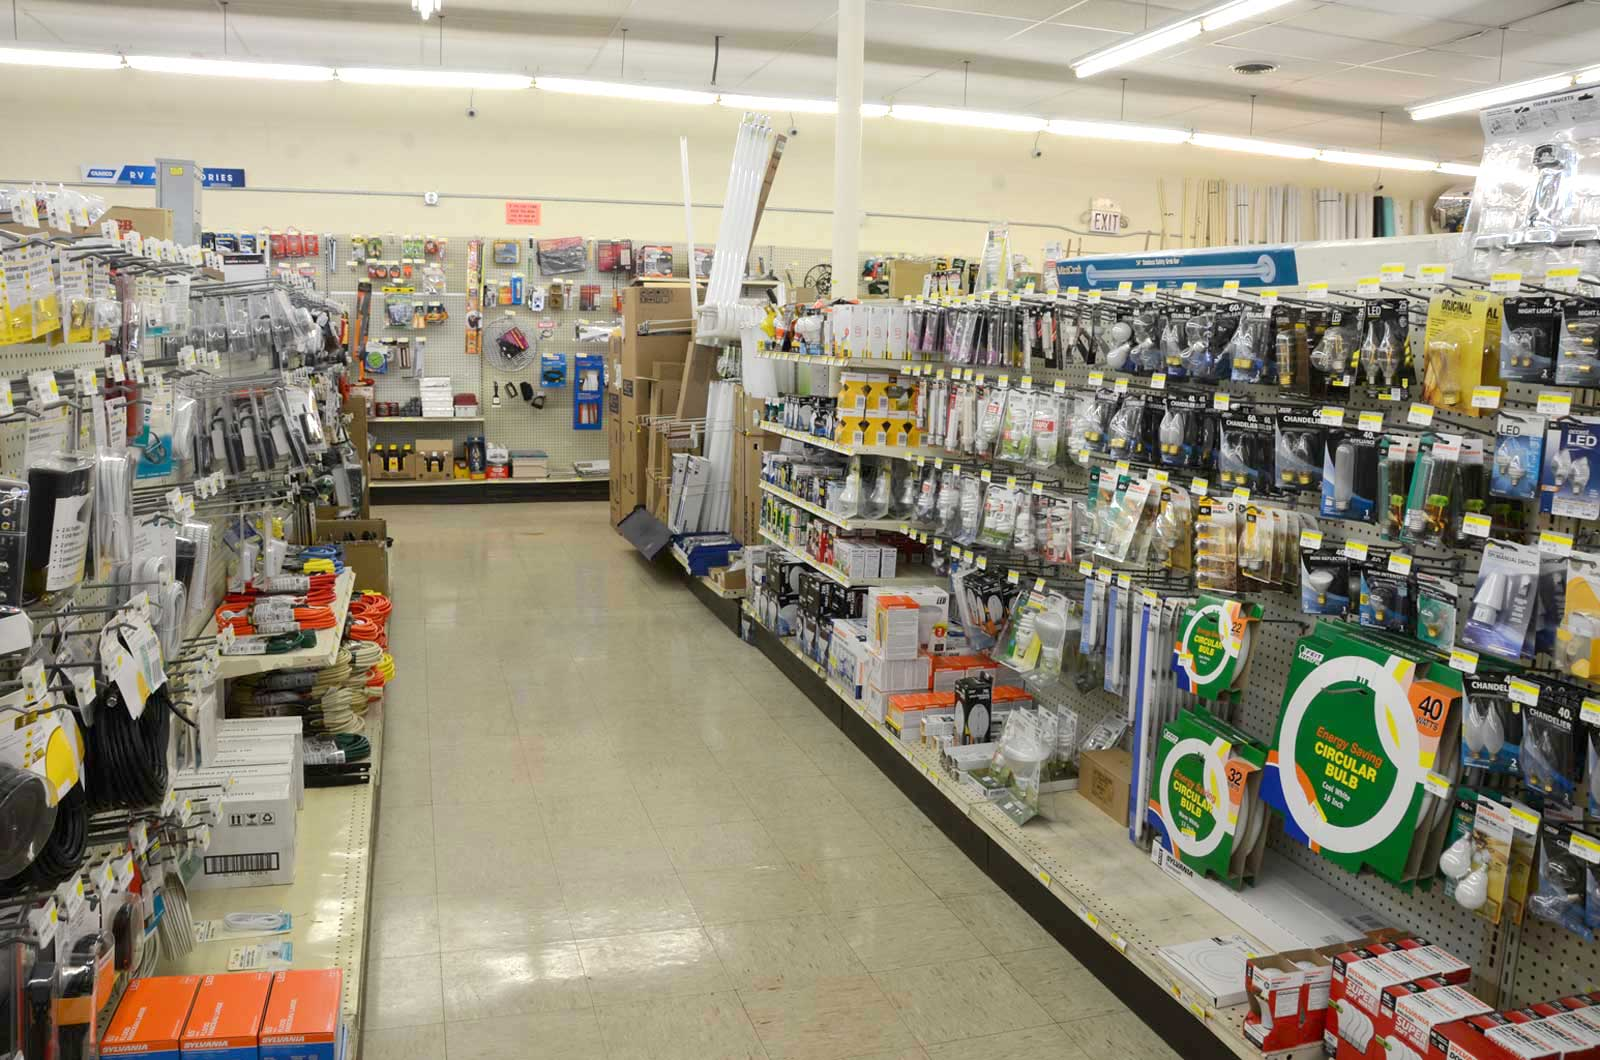 Household Hardware, Tools & Supplies